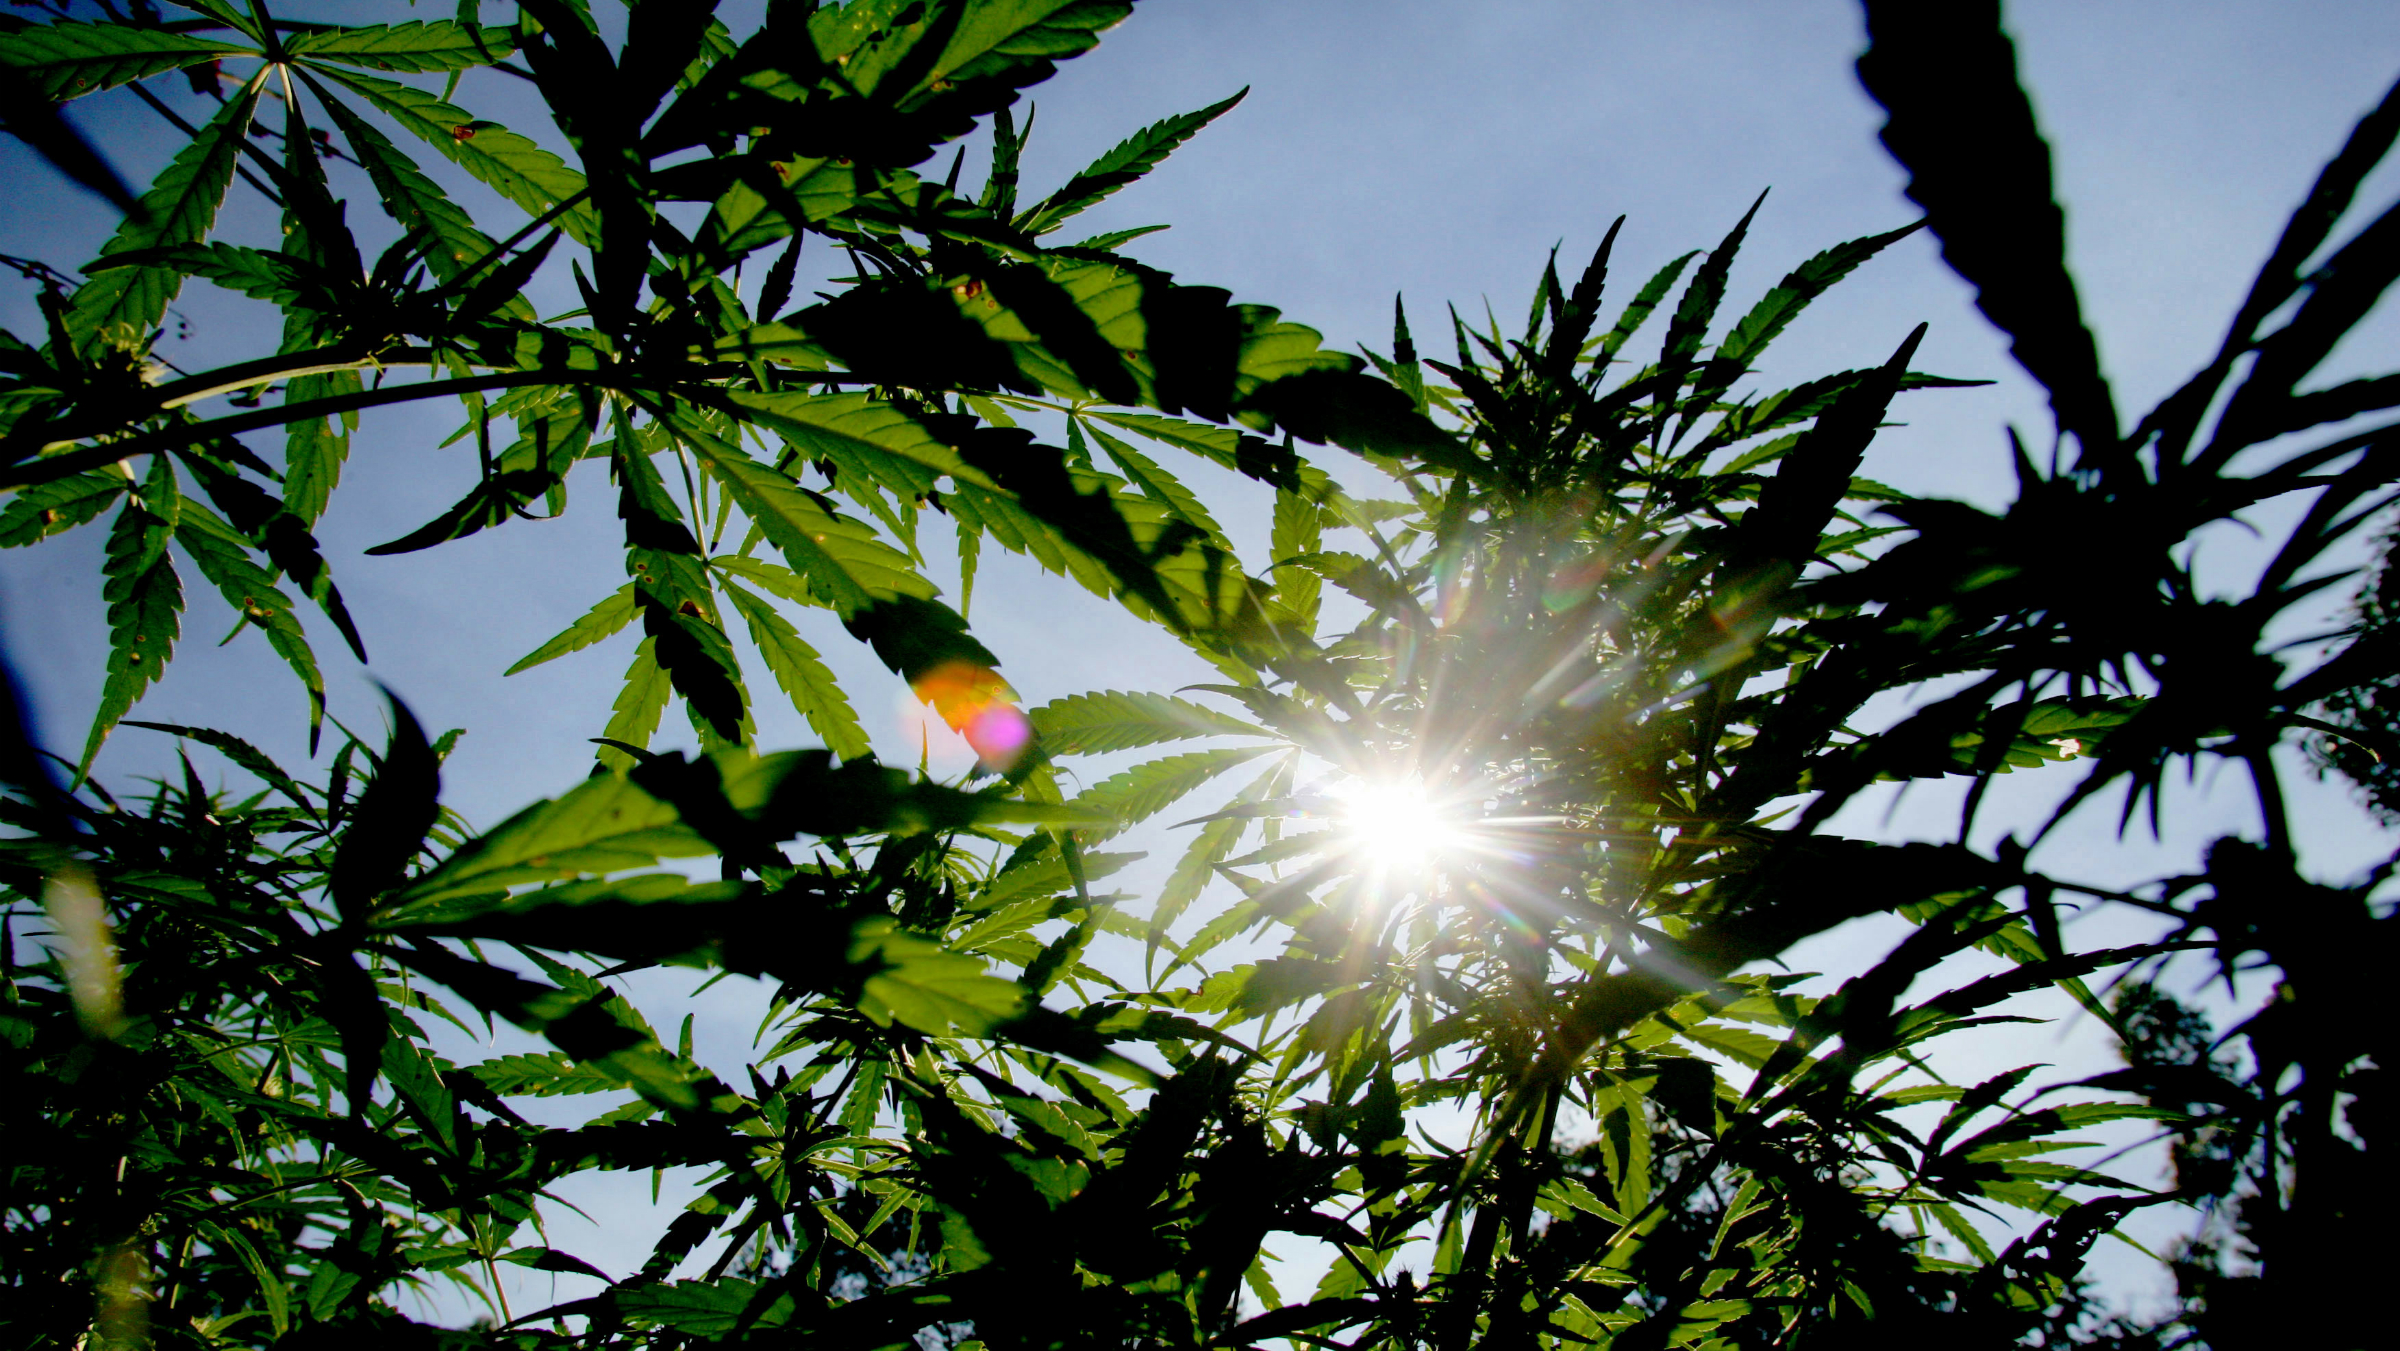 """The sun shines though the distinctively shaped leaves of marijuana plants during police raid in the remote northern Hhohho region in Swaziland, May 24, 2005. Police say they they are fighting a losing battle to destroy crops of """"Swazi Gold"""", prized for its potency around the world. Marijuana is the most lucrative cash crop for peasants struggling with drought, unemployment and HIV/AIDS."""